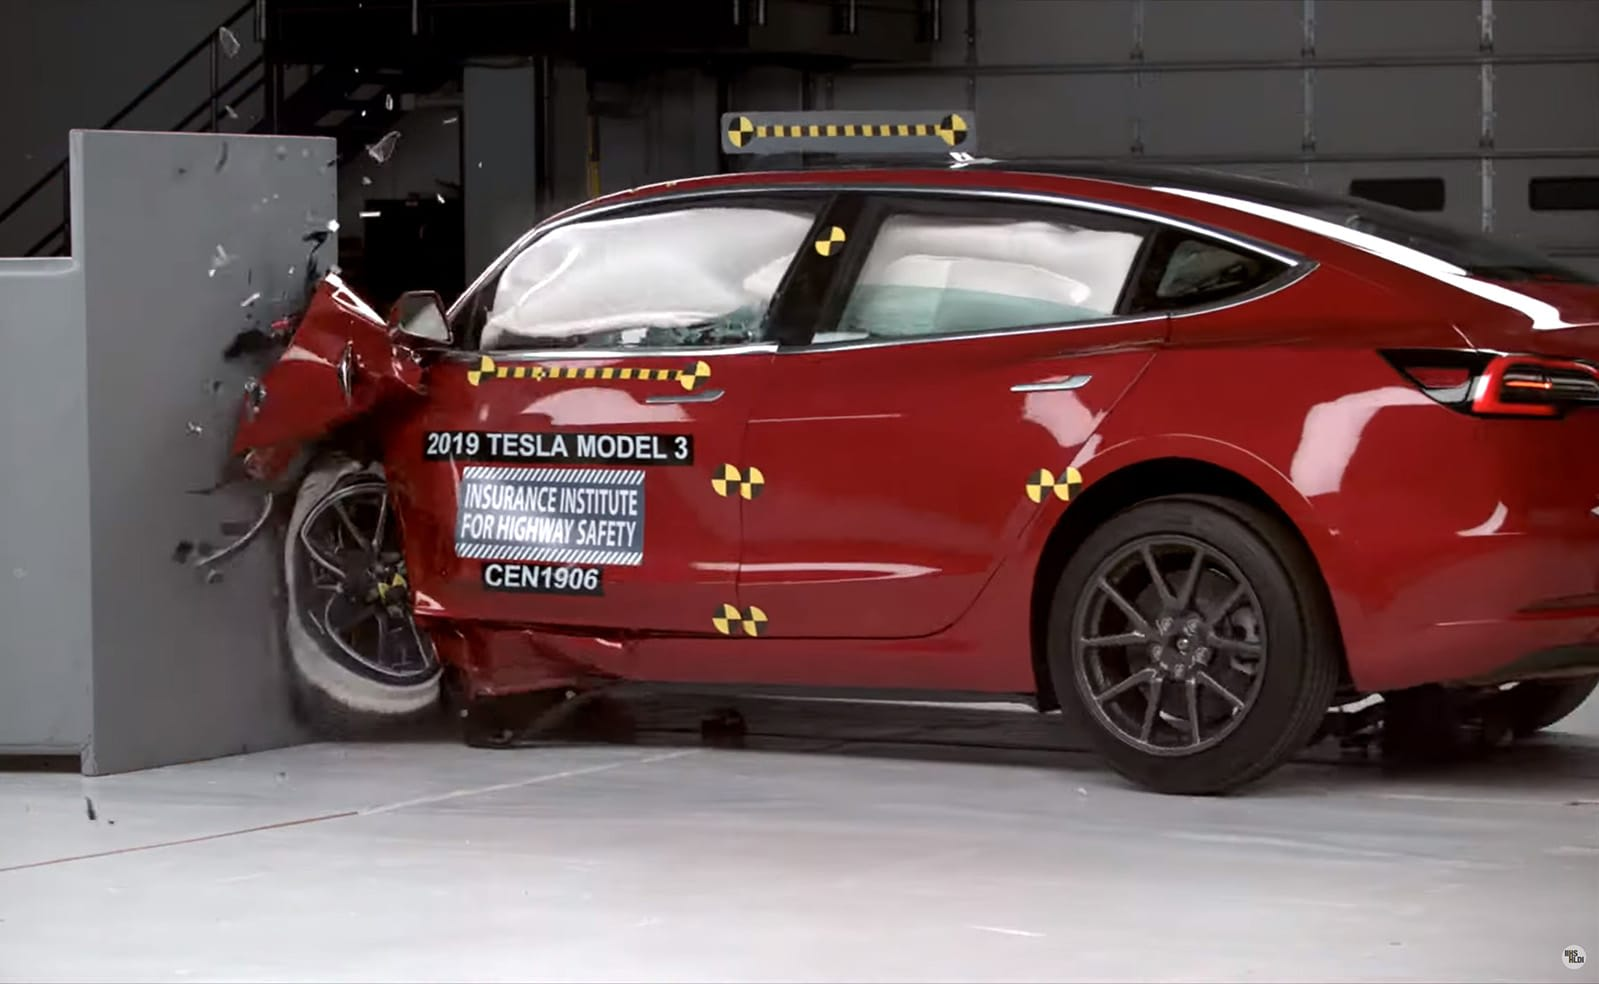 Tesla's Model 3 joins Audi's E-Tron in claiming top safety award